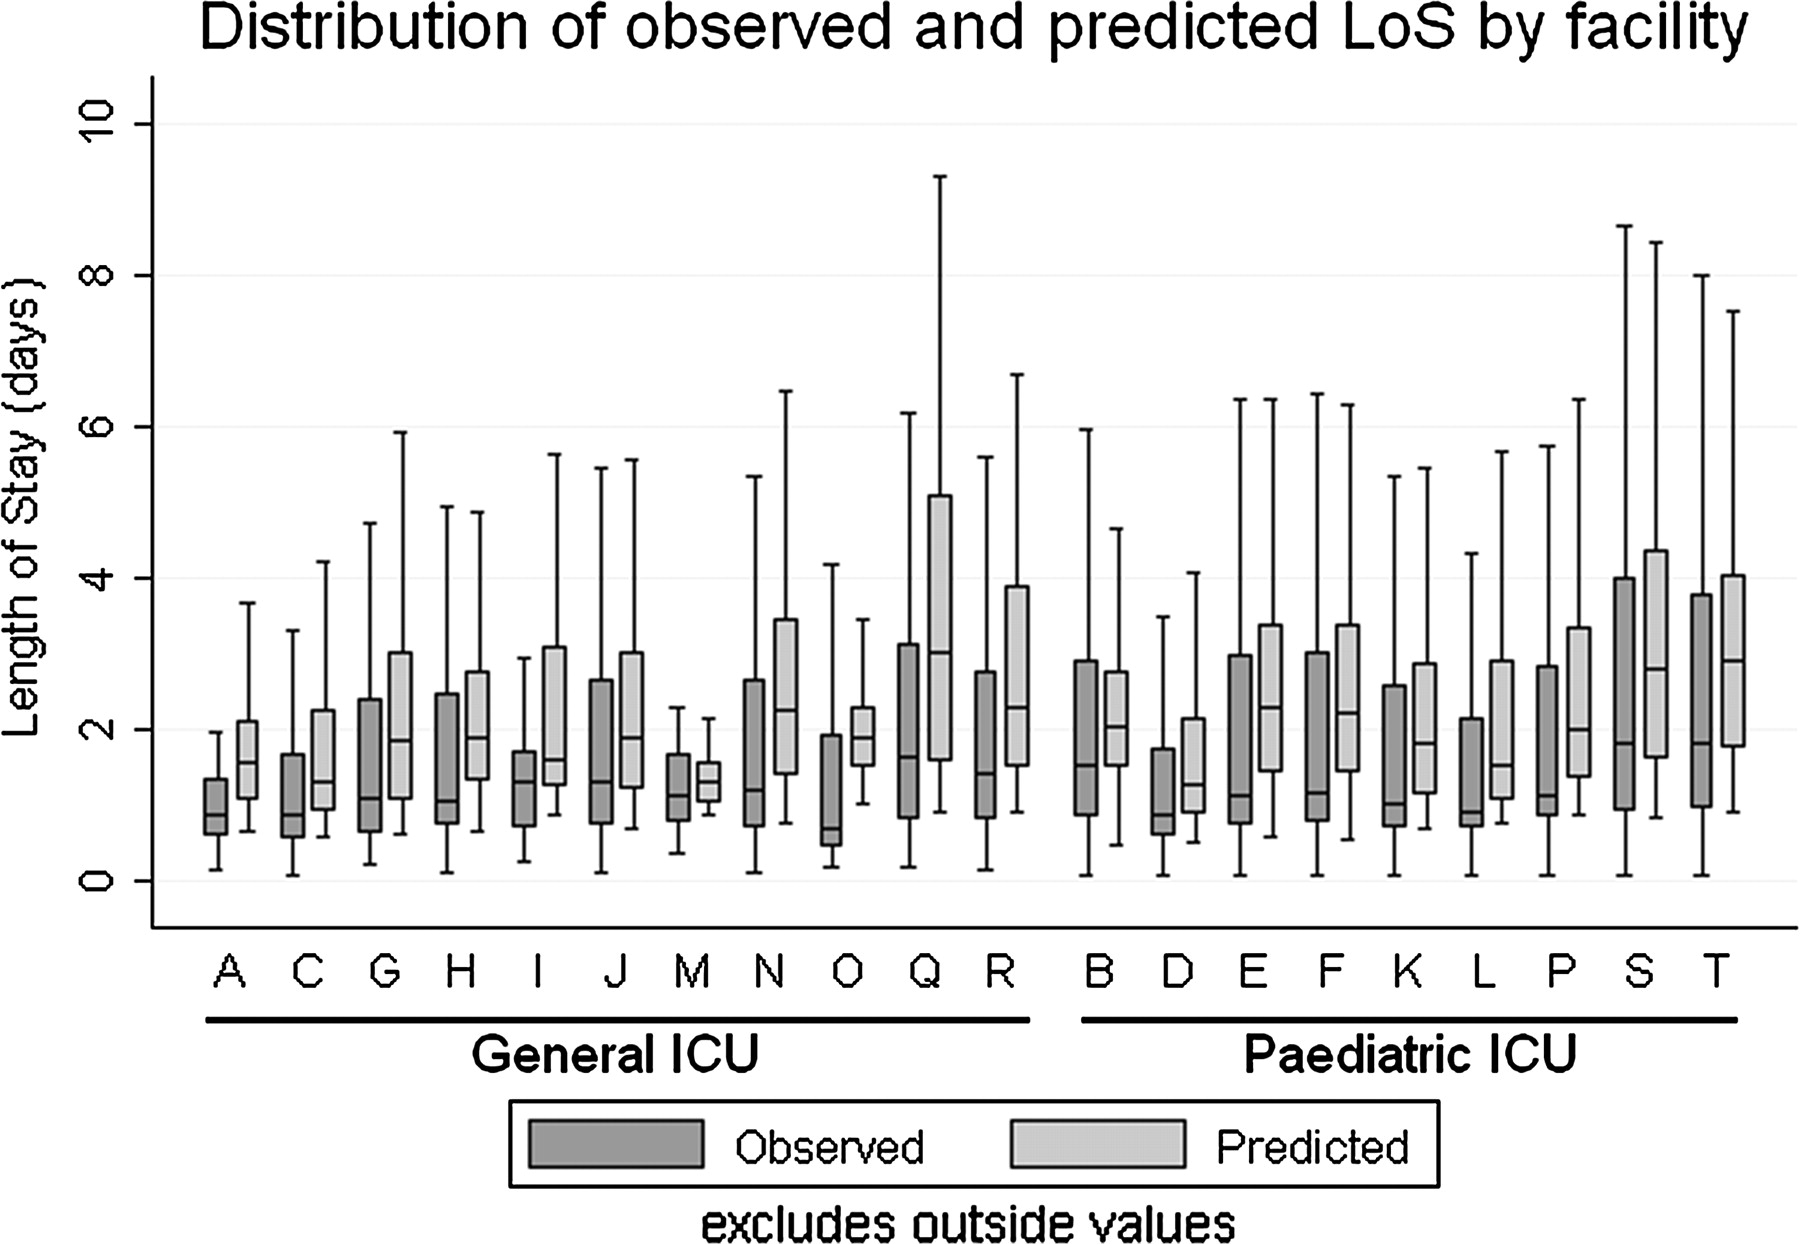 length of stay in pediatric intensive care unit Ventilator-associated pneumonia in neonatal and pediatric intensive care unit patients  neonatal and pediatric intensive care unit  length of stay in the picu (261 173 versus 106 6 days p 0001) than uninfected patients the mortality rate was.